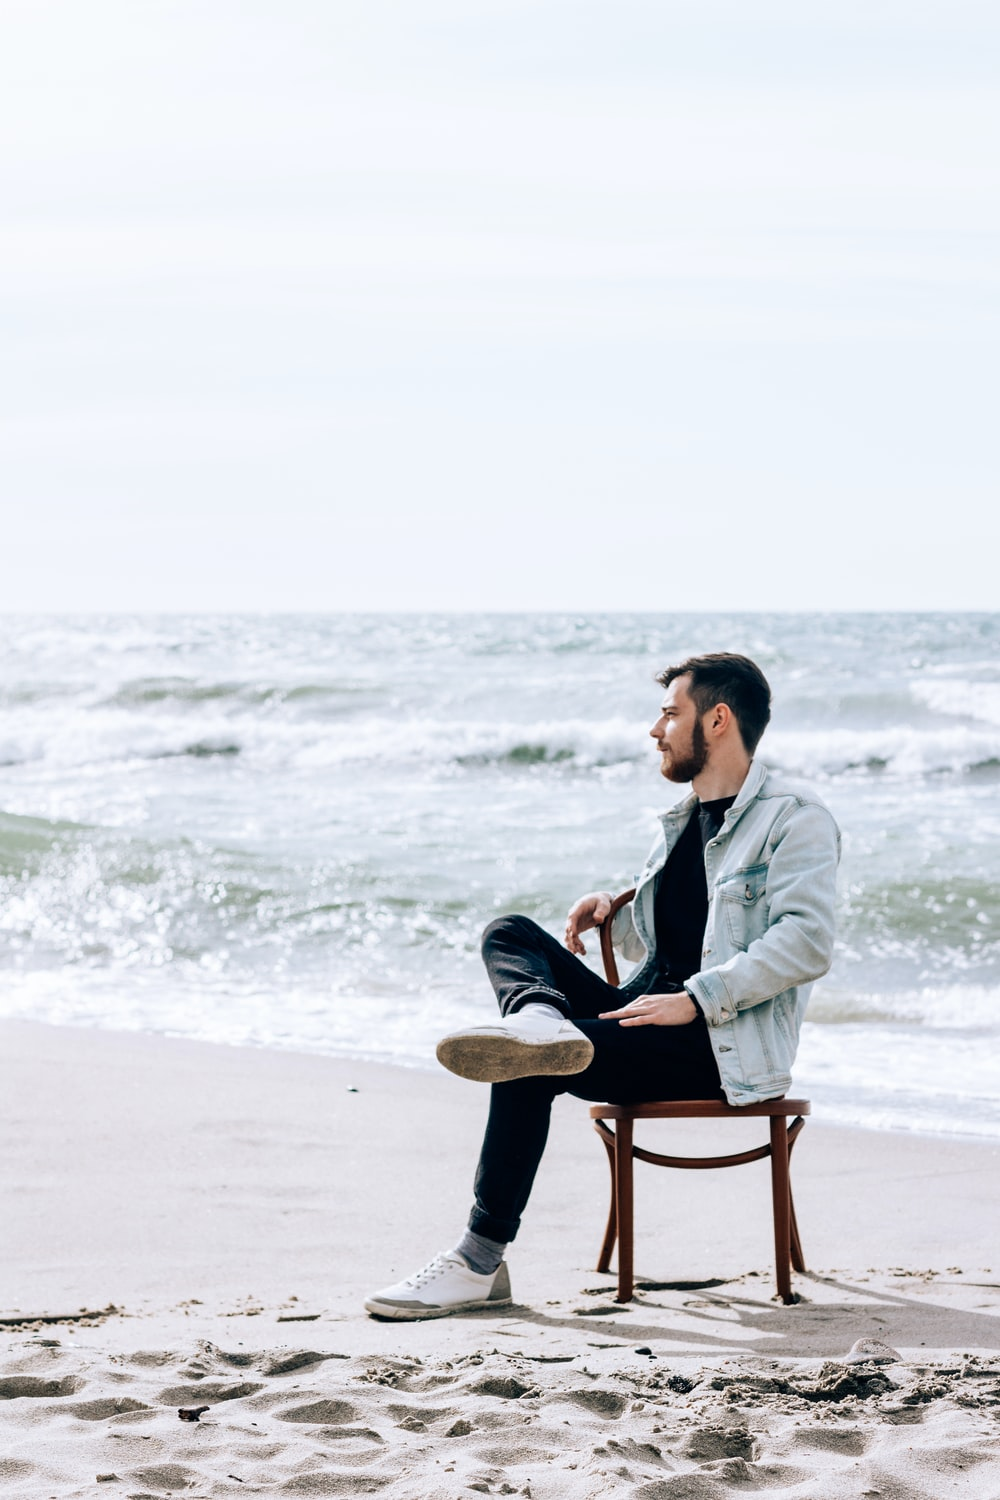 man in gray jacket sitting on brown wooden chair on beach during daytime